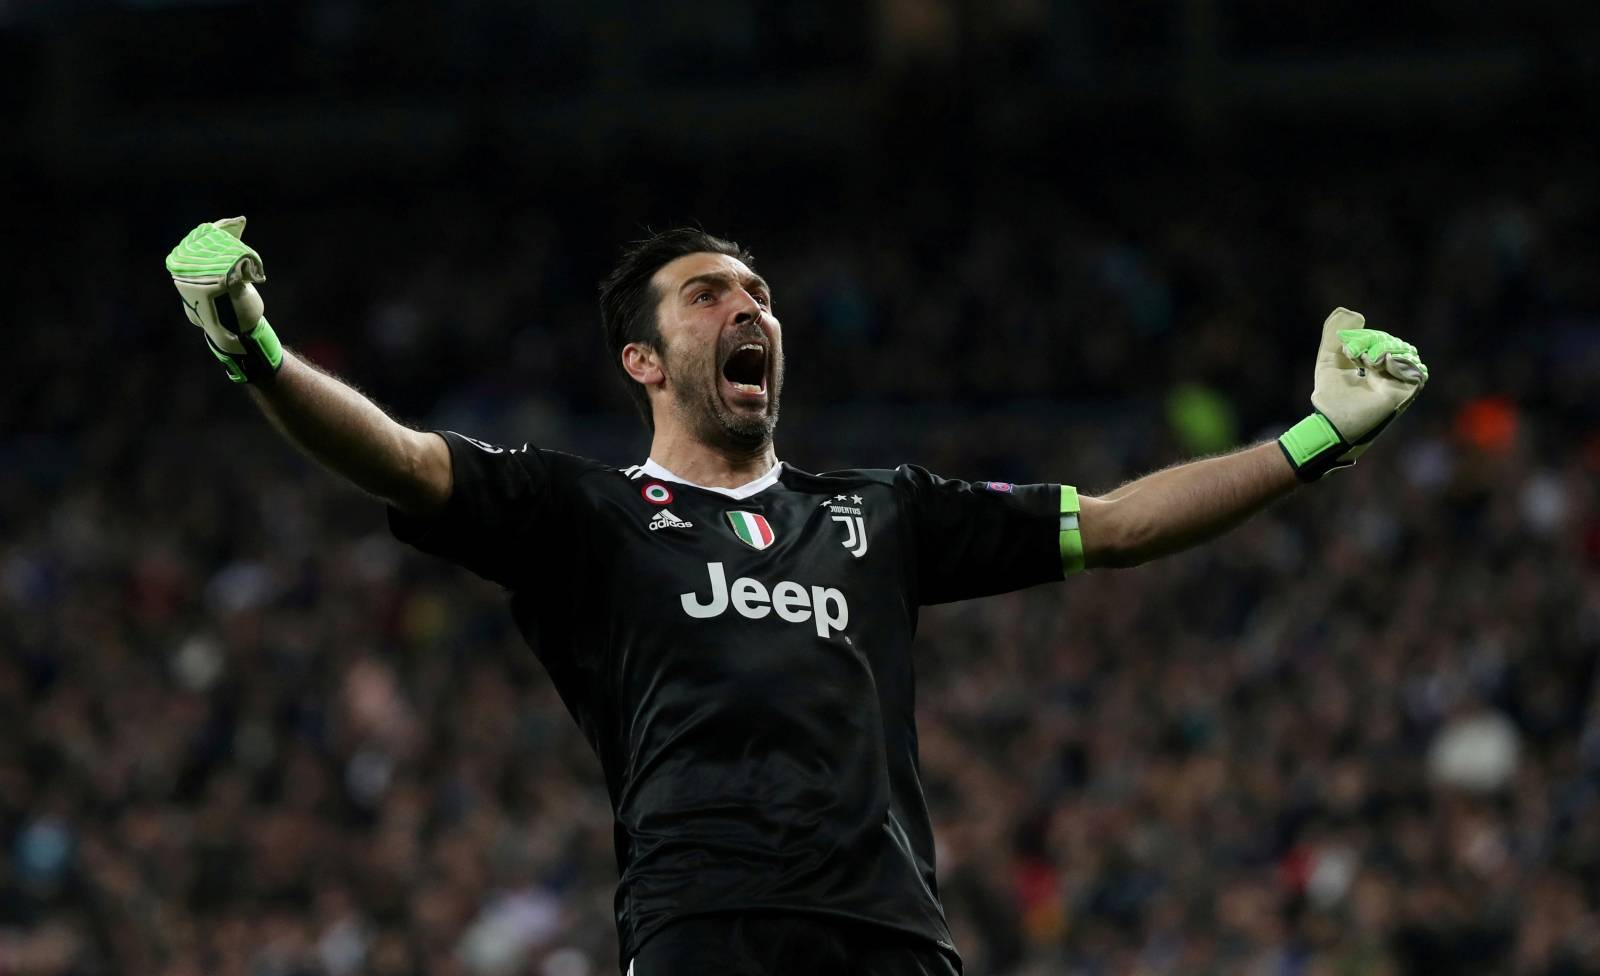 FILE PHOTO: Juventus goalkeeper Gianluigi Buffon celebrates their third goal scored by Blaise Matuidi in a 3-1 win against Real Madrid at the Santiago Bernabeu stadium, Madrid